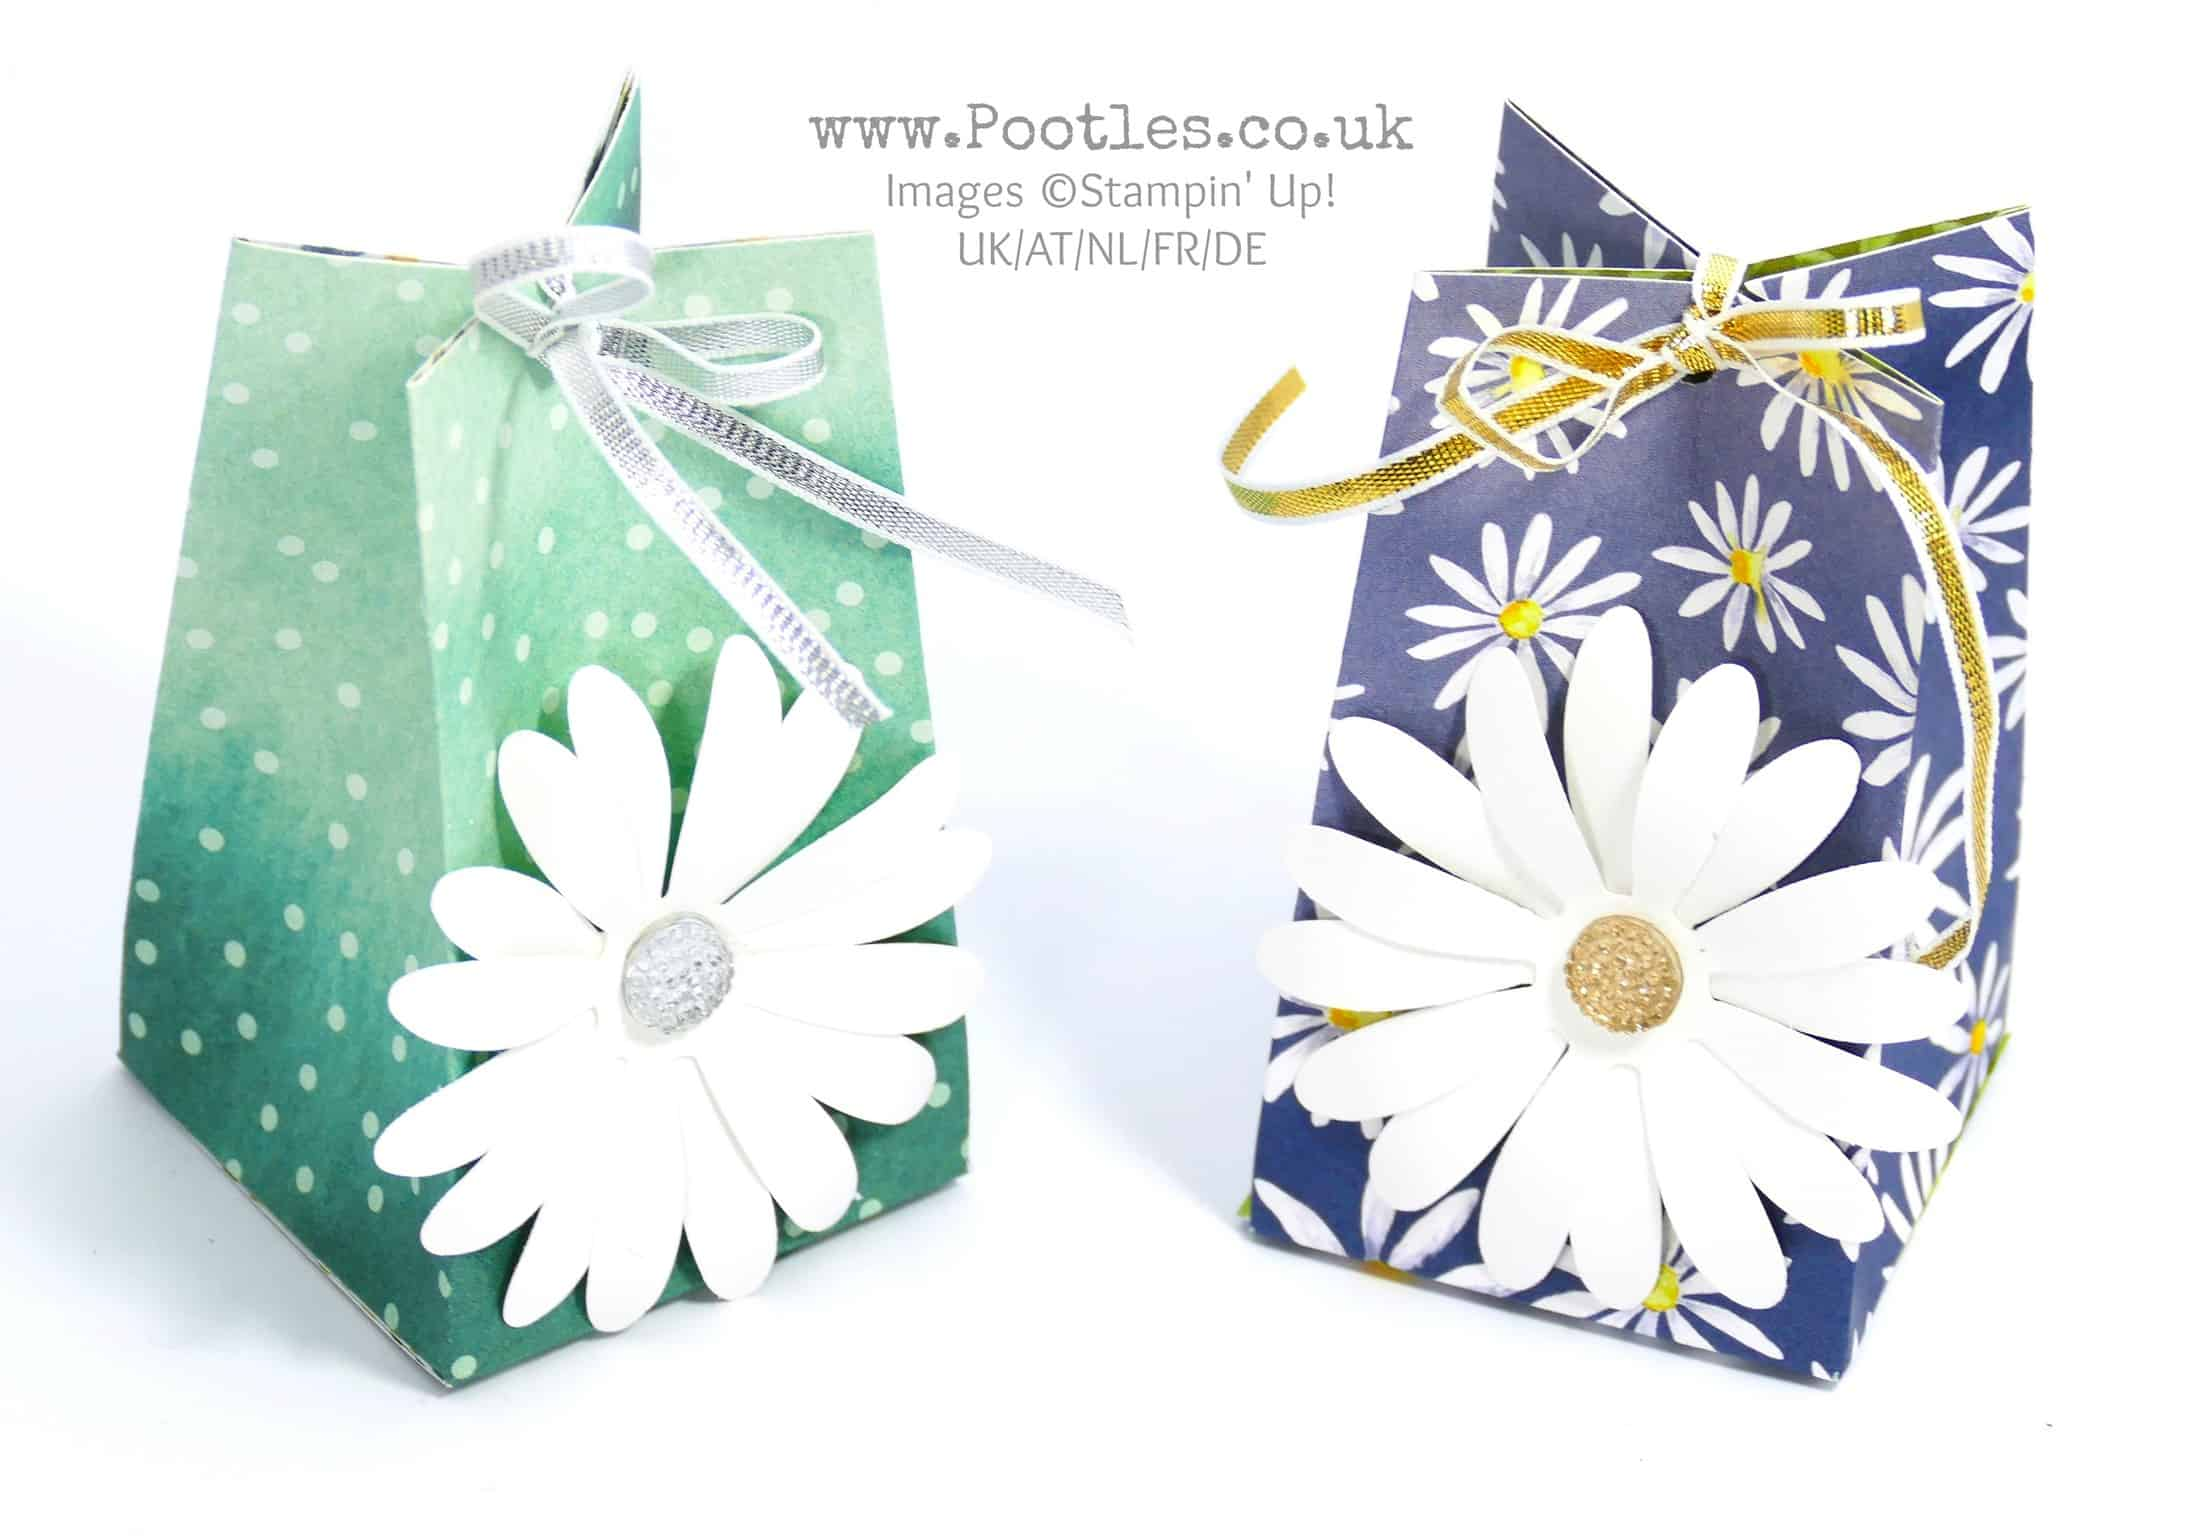 Big Daisy Small Bag! Using Stampin' Up! Delightful Daisy